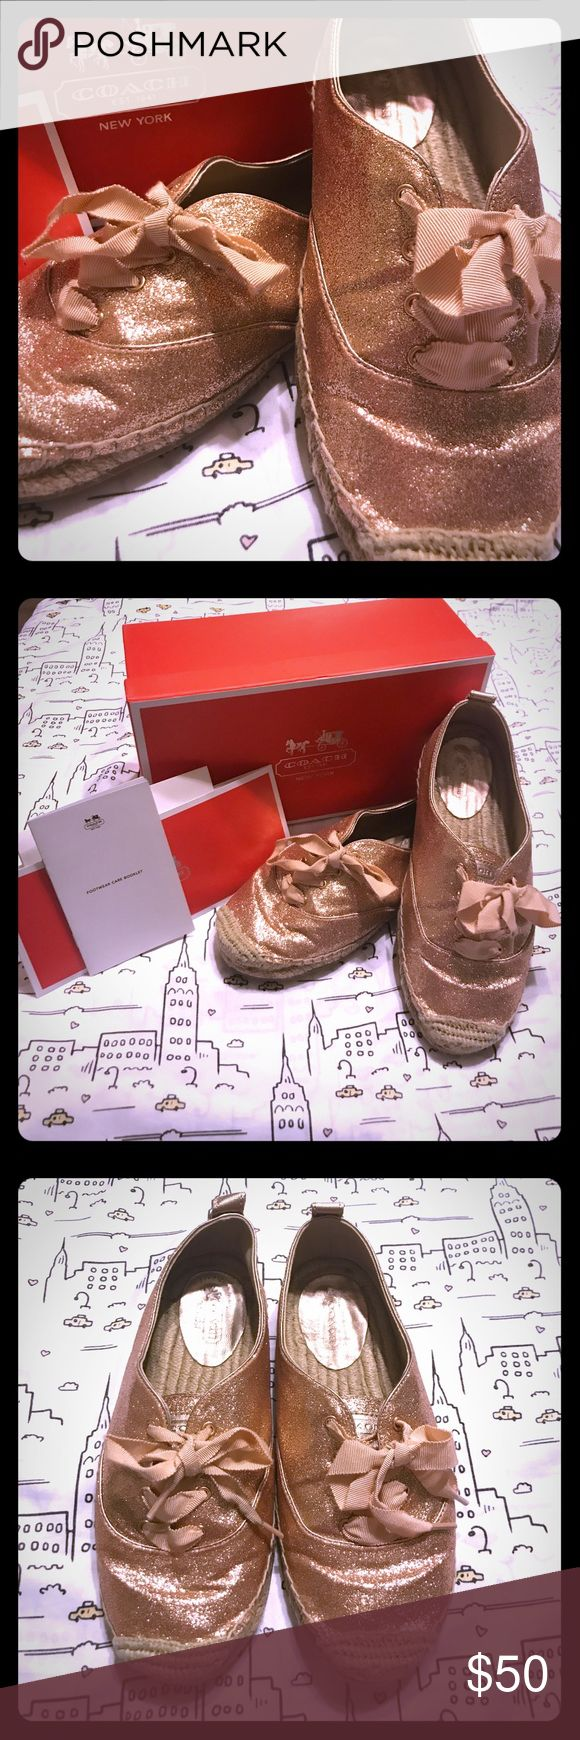 Coach Glittery Rosegold Espadrille Flats- Size 7.5 Coach Glittery Rosegold Espadrille Flats w/ Rosegold Ribbon Shoelaces - Size 7.5 - Used, but in Great Condition - Includes original Coach box, care instructions and authenticity purchase card & receipt!  These shoes have been gently loved meaning I've worn them a handful of times when I first got them, but they've been stored in the box ever since.  These shoes are super cute & comfy and would look awesome worn all year long!  Embrace the…